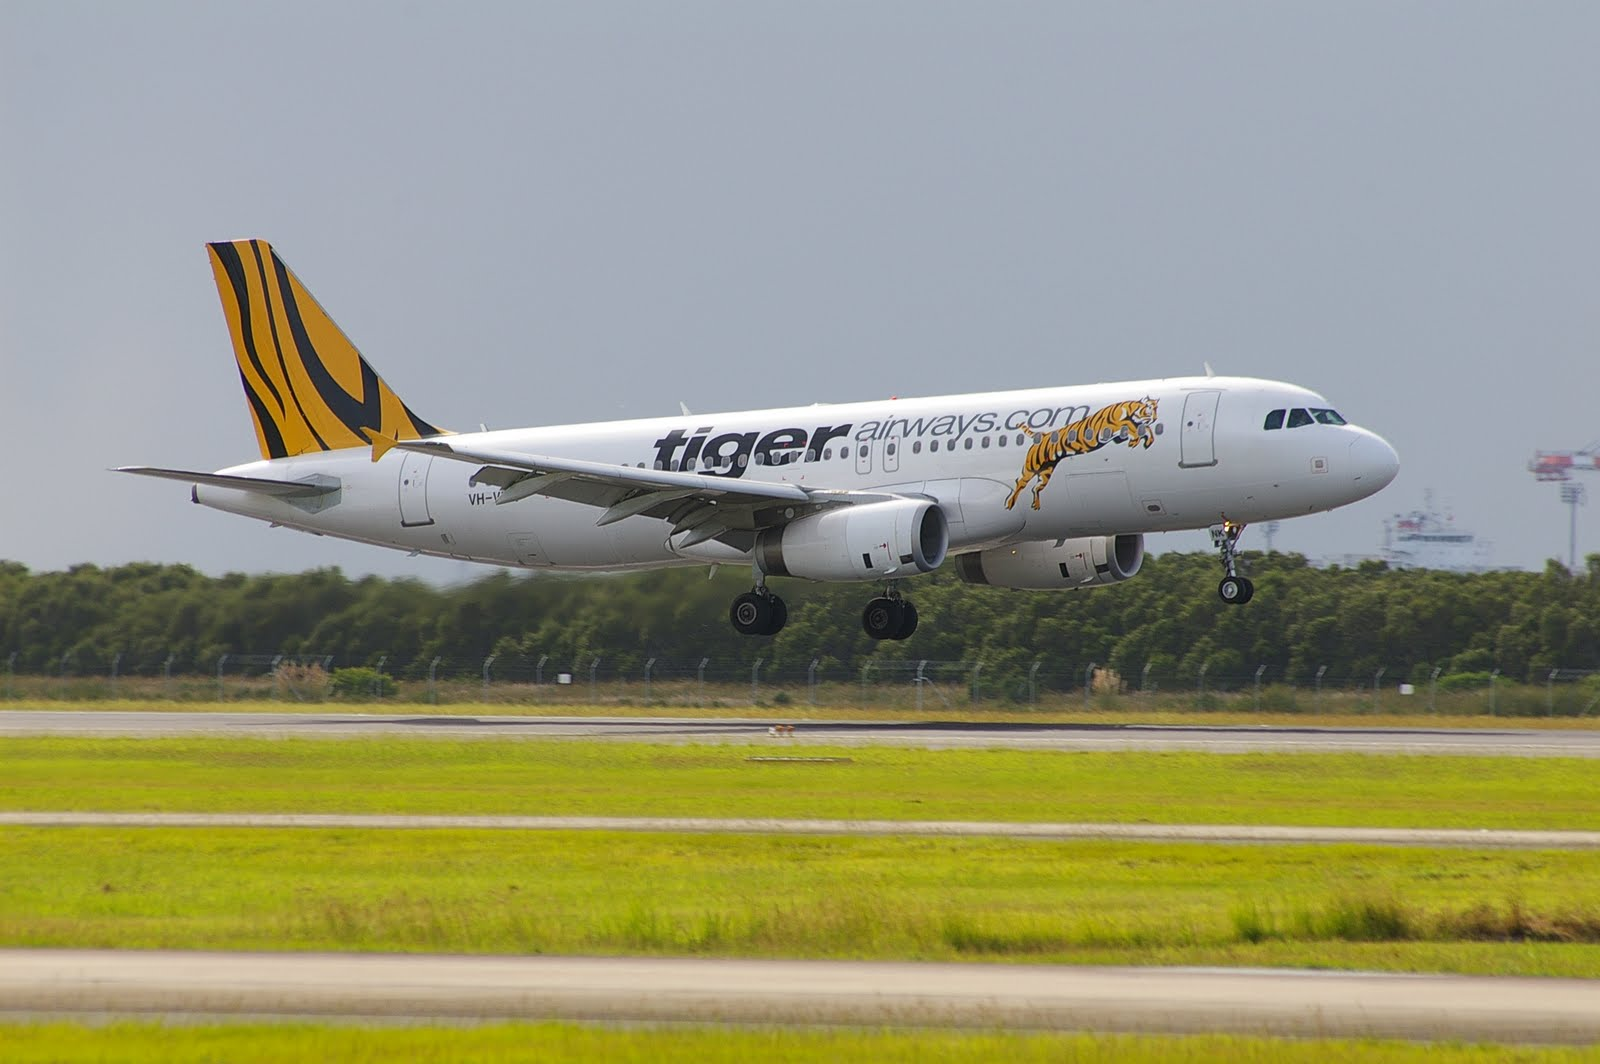 R Tiger Airways South East QLD Aviatio...